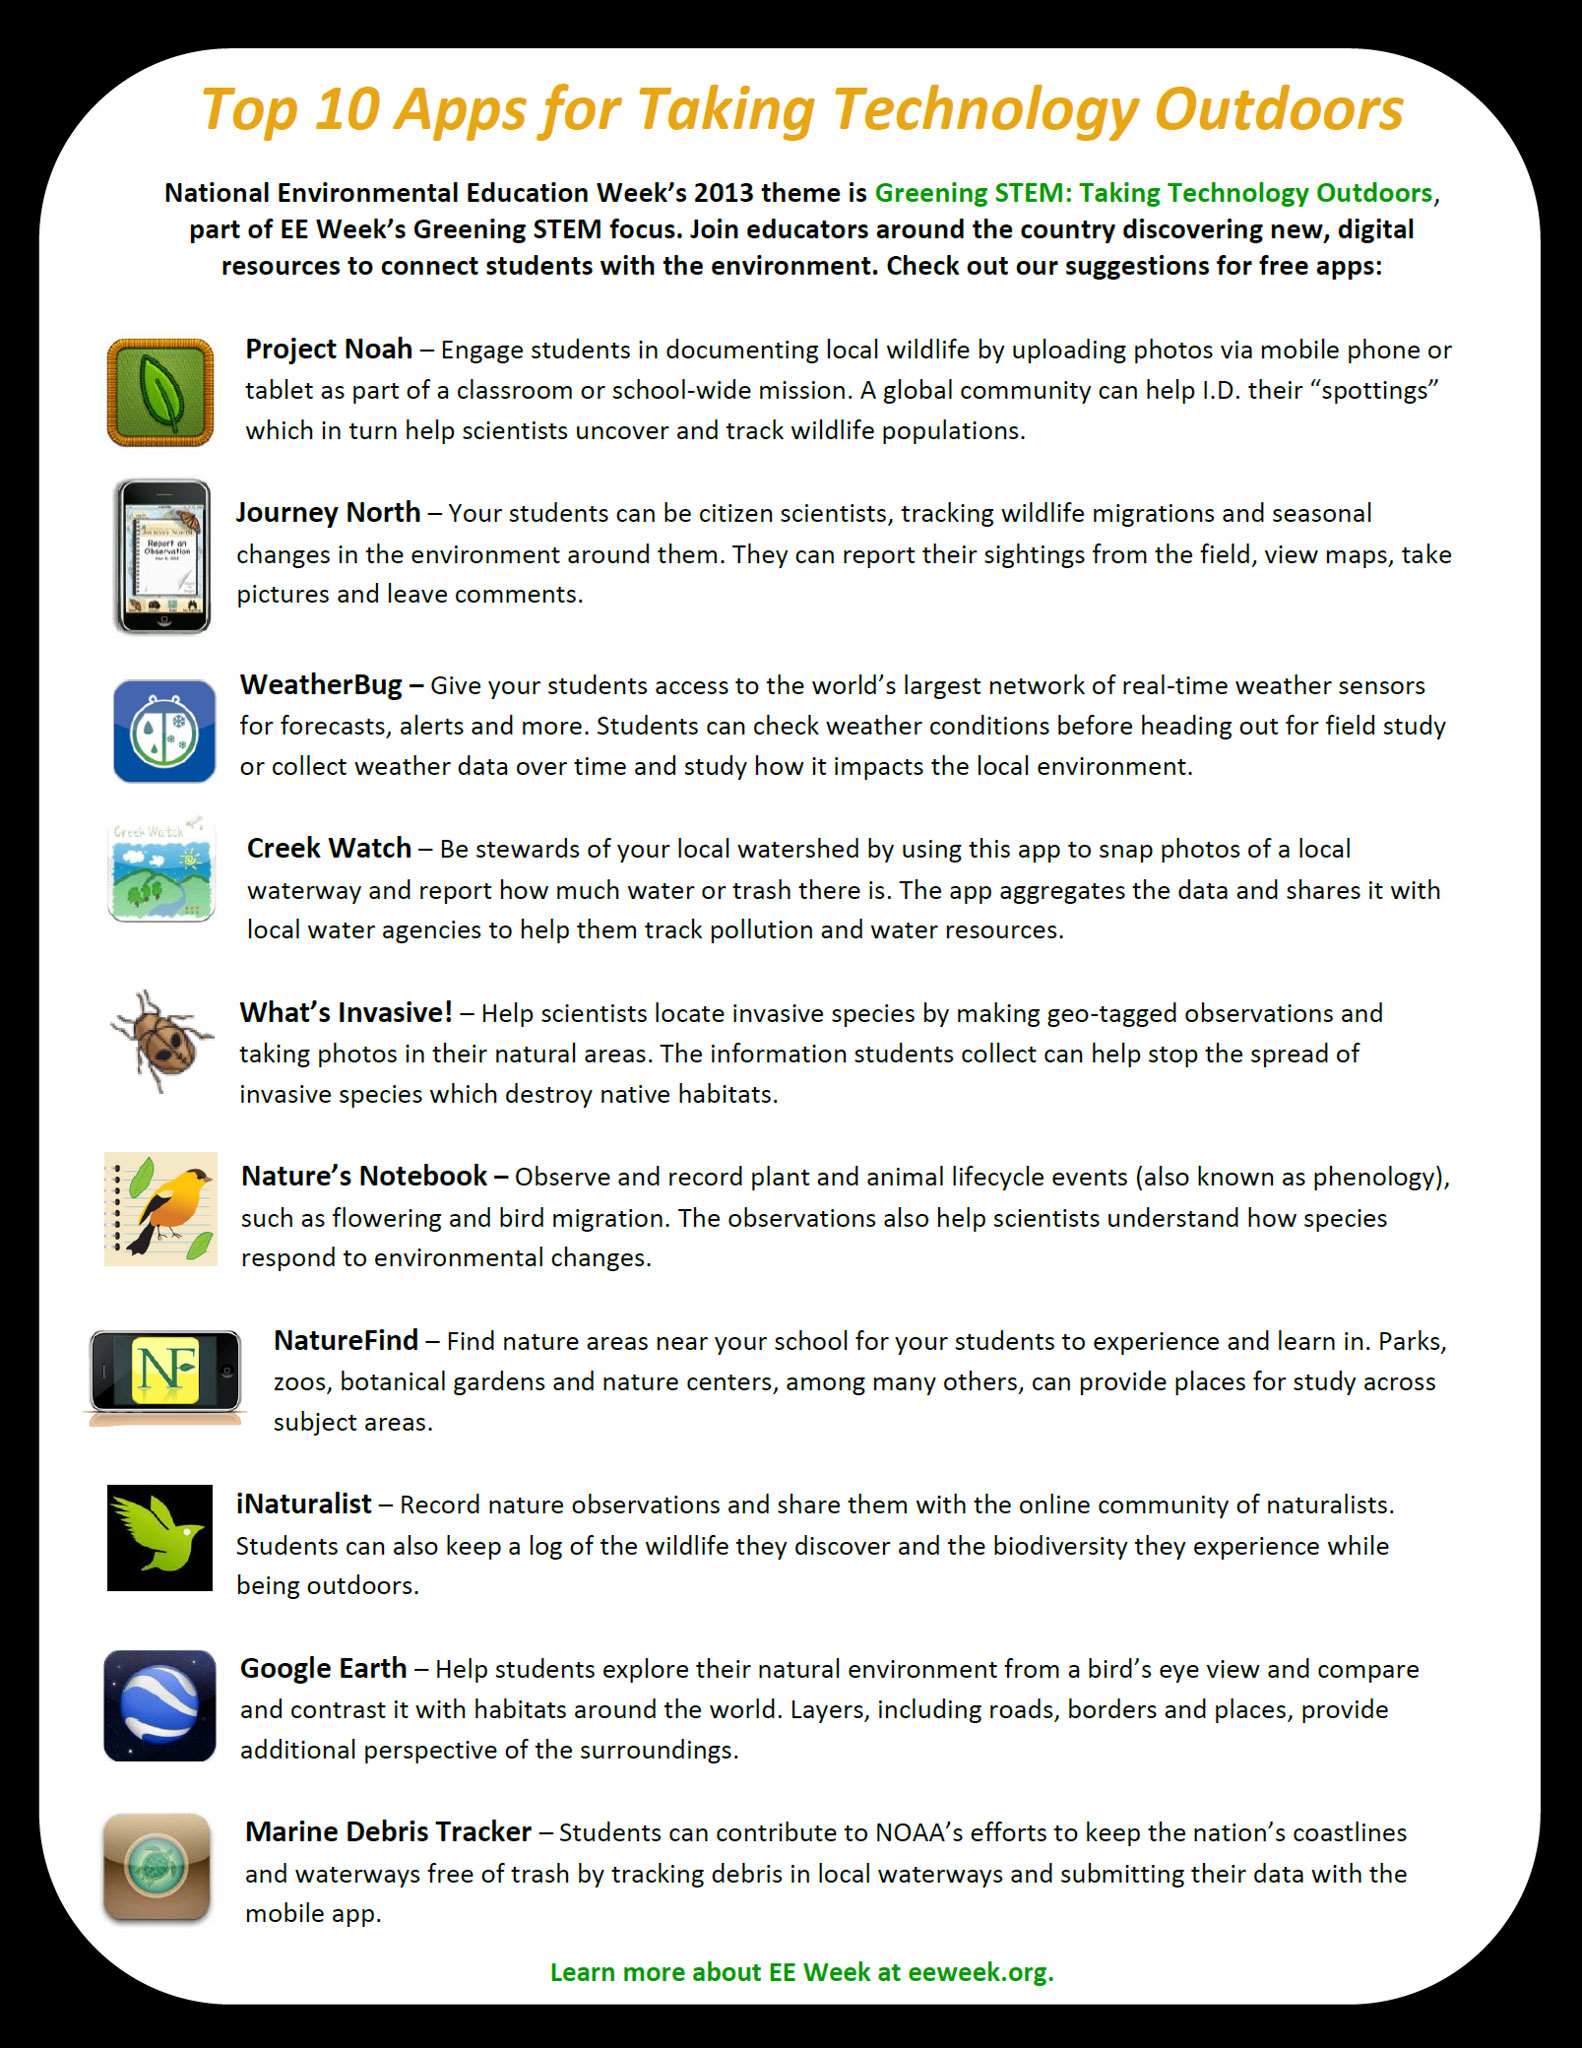 Why Outdoor Activities Are Important For Student Technology Outdoors